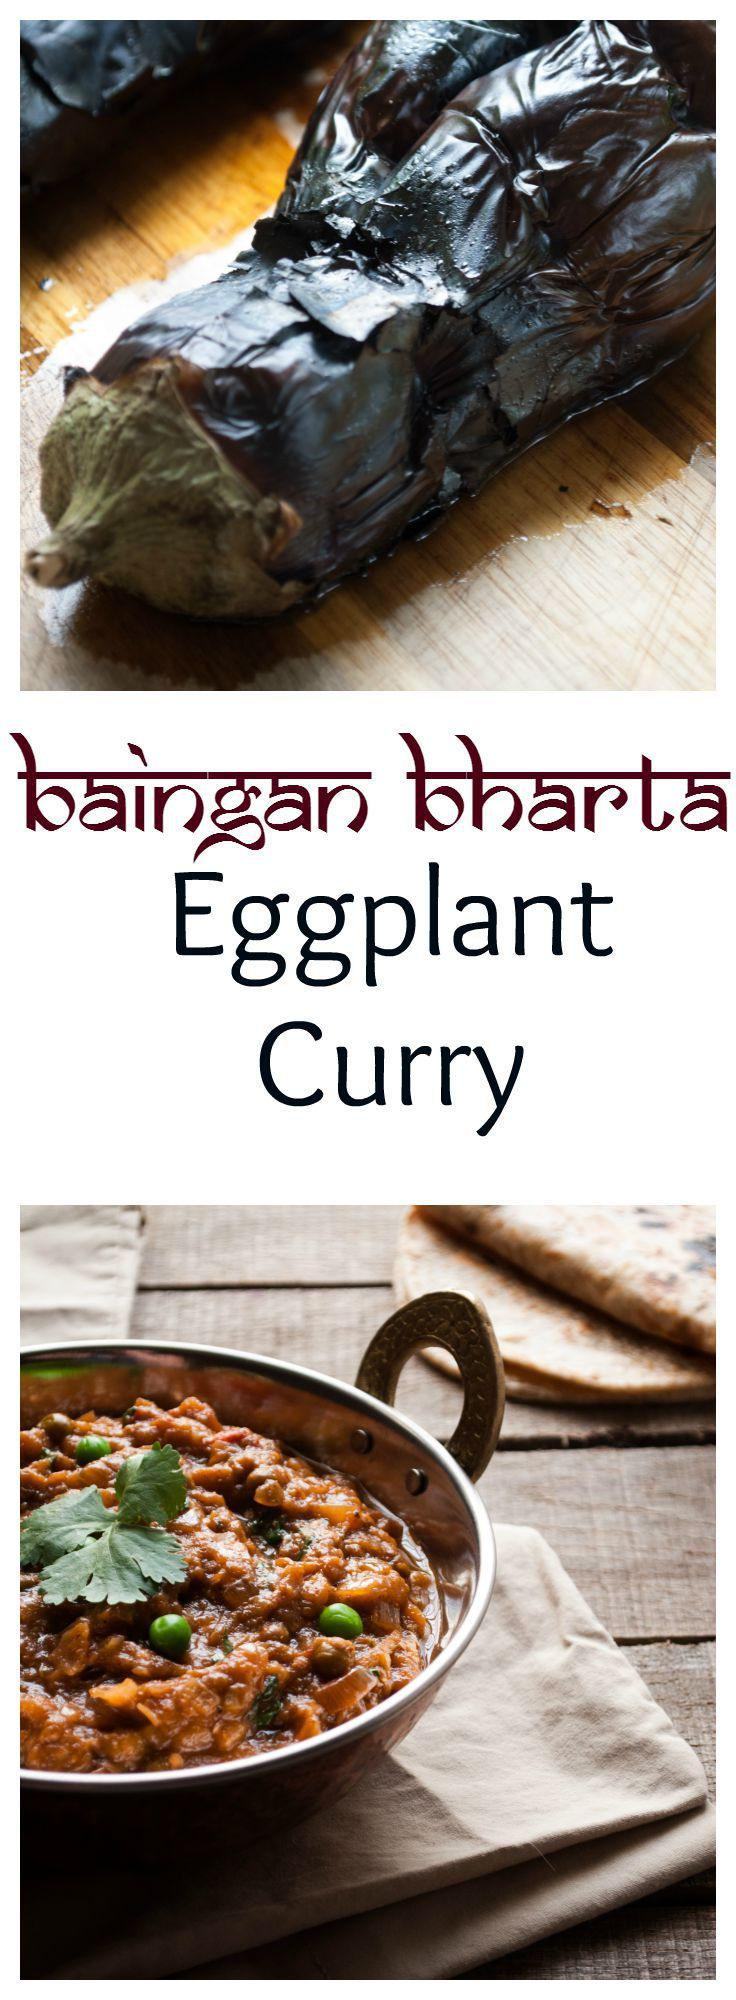 Baingan Bharta | Smoky Eggplant Curry | whitbitskitchen.com